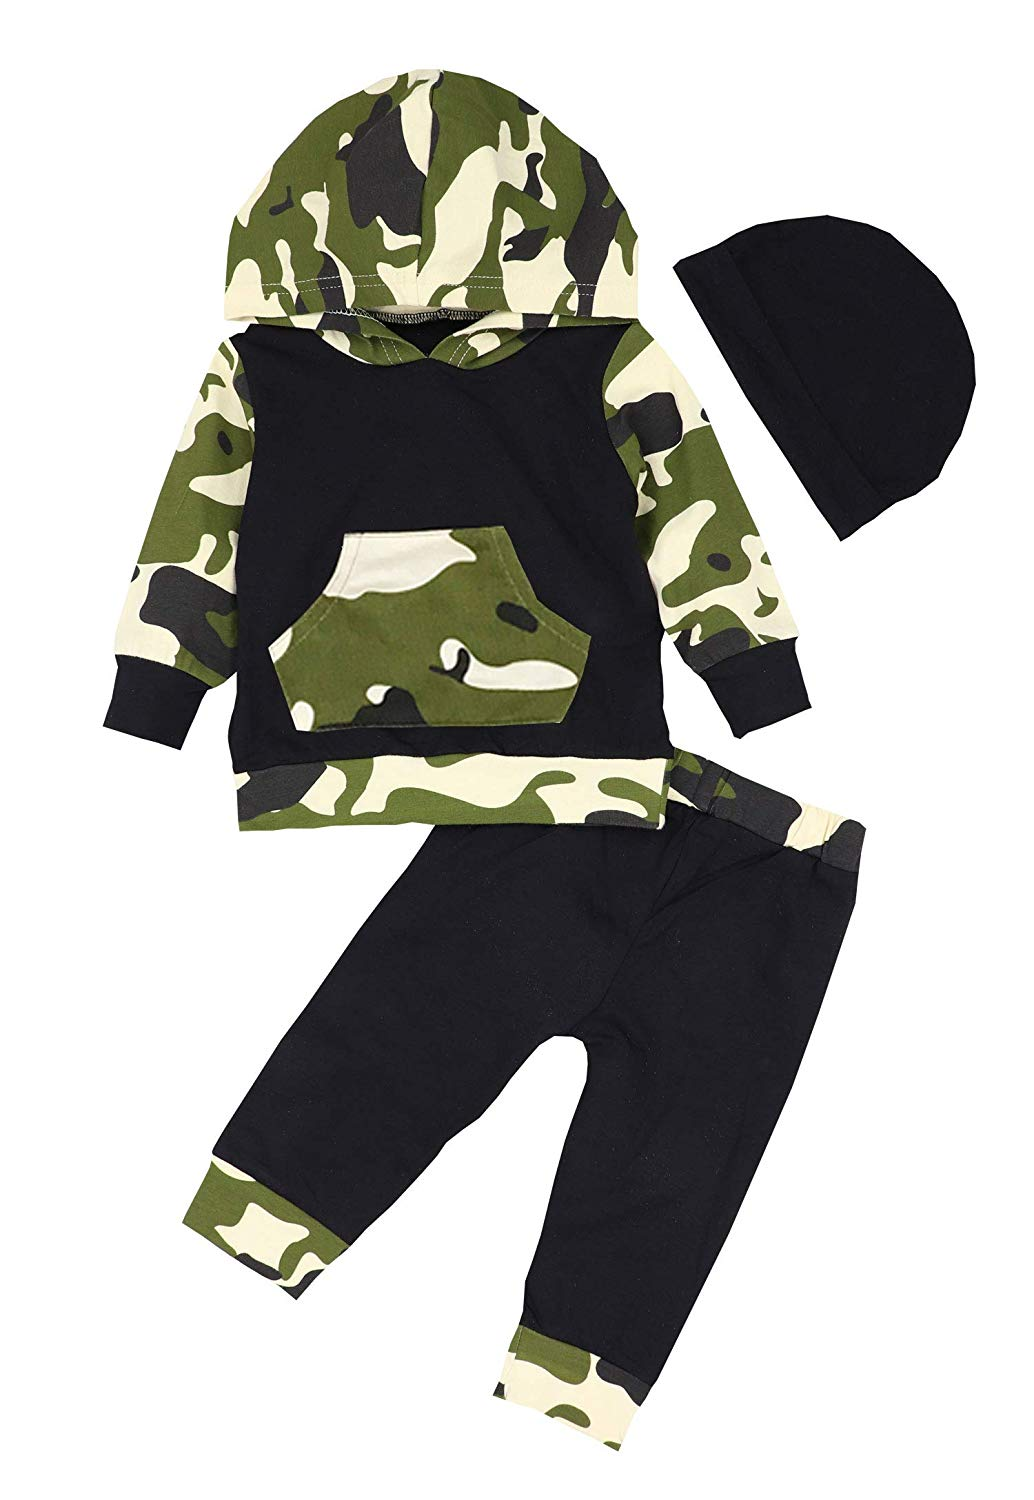 Hoodie Camouflage Print Tops Mother & Kids Boys' Baby Clothing Pants Infant Baby Girls Clothes Sets Outfits Camouflage Camo Hoodie Tops Long Pants Outfits Terrific Value